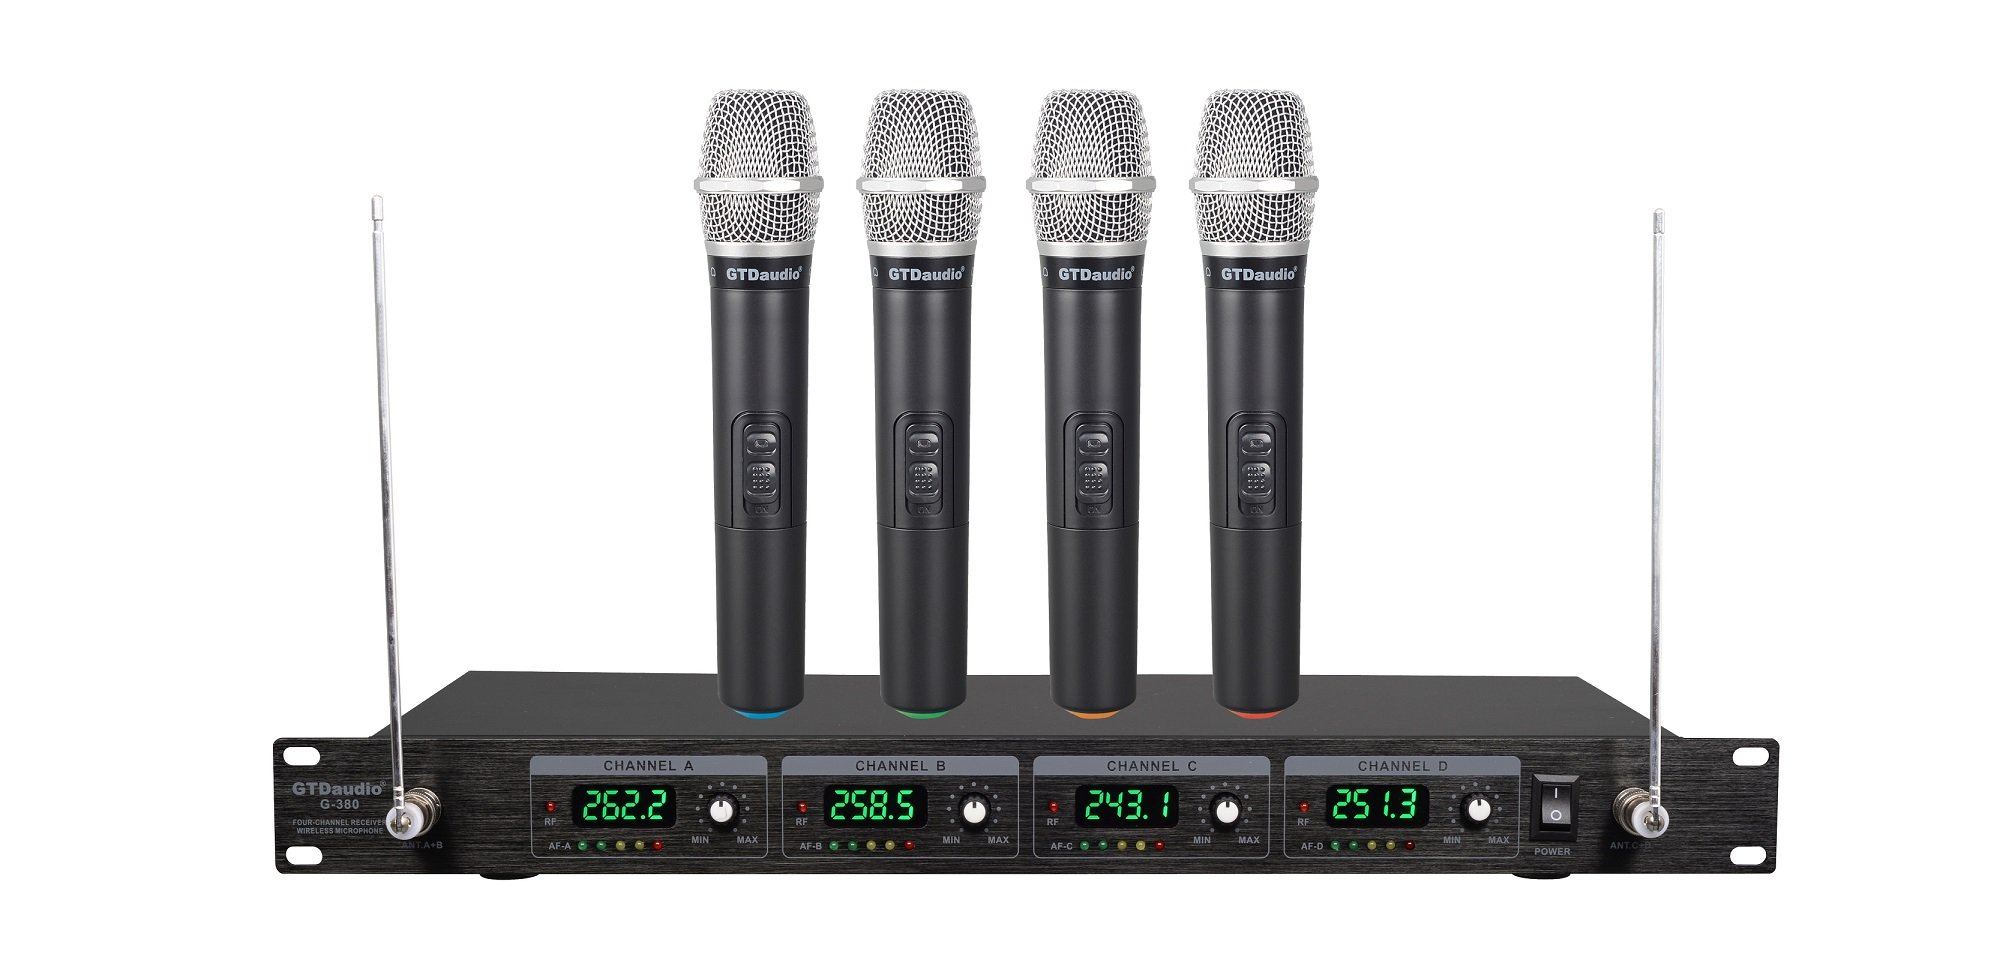 GTD Audio G-380H VHF Wireless Microphone System with 4 Hand held mics by GTDaudio